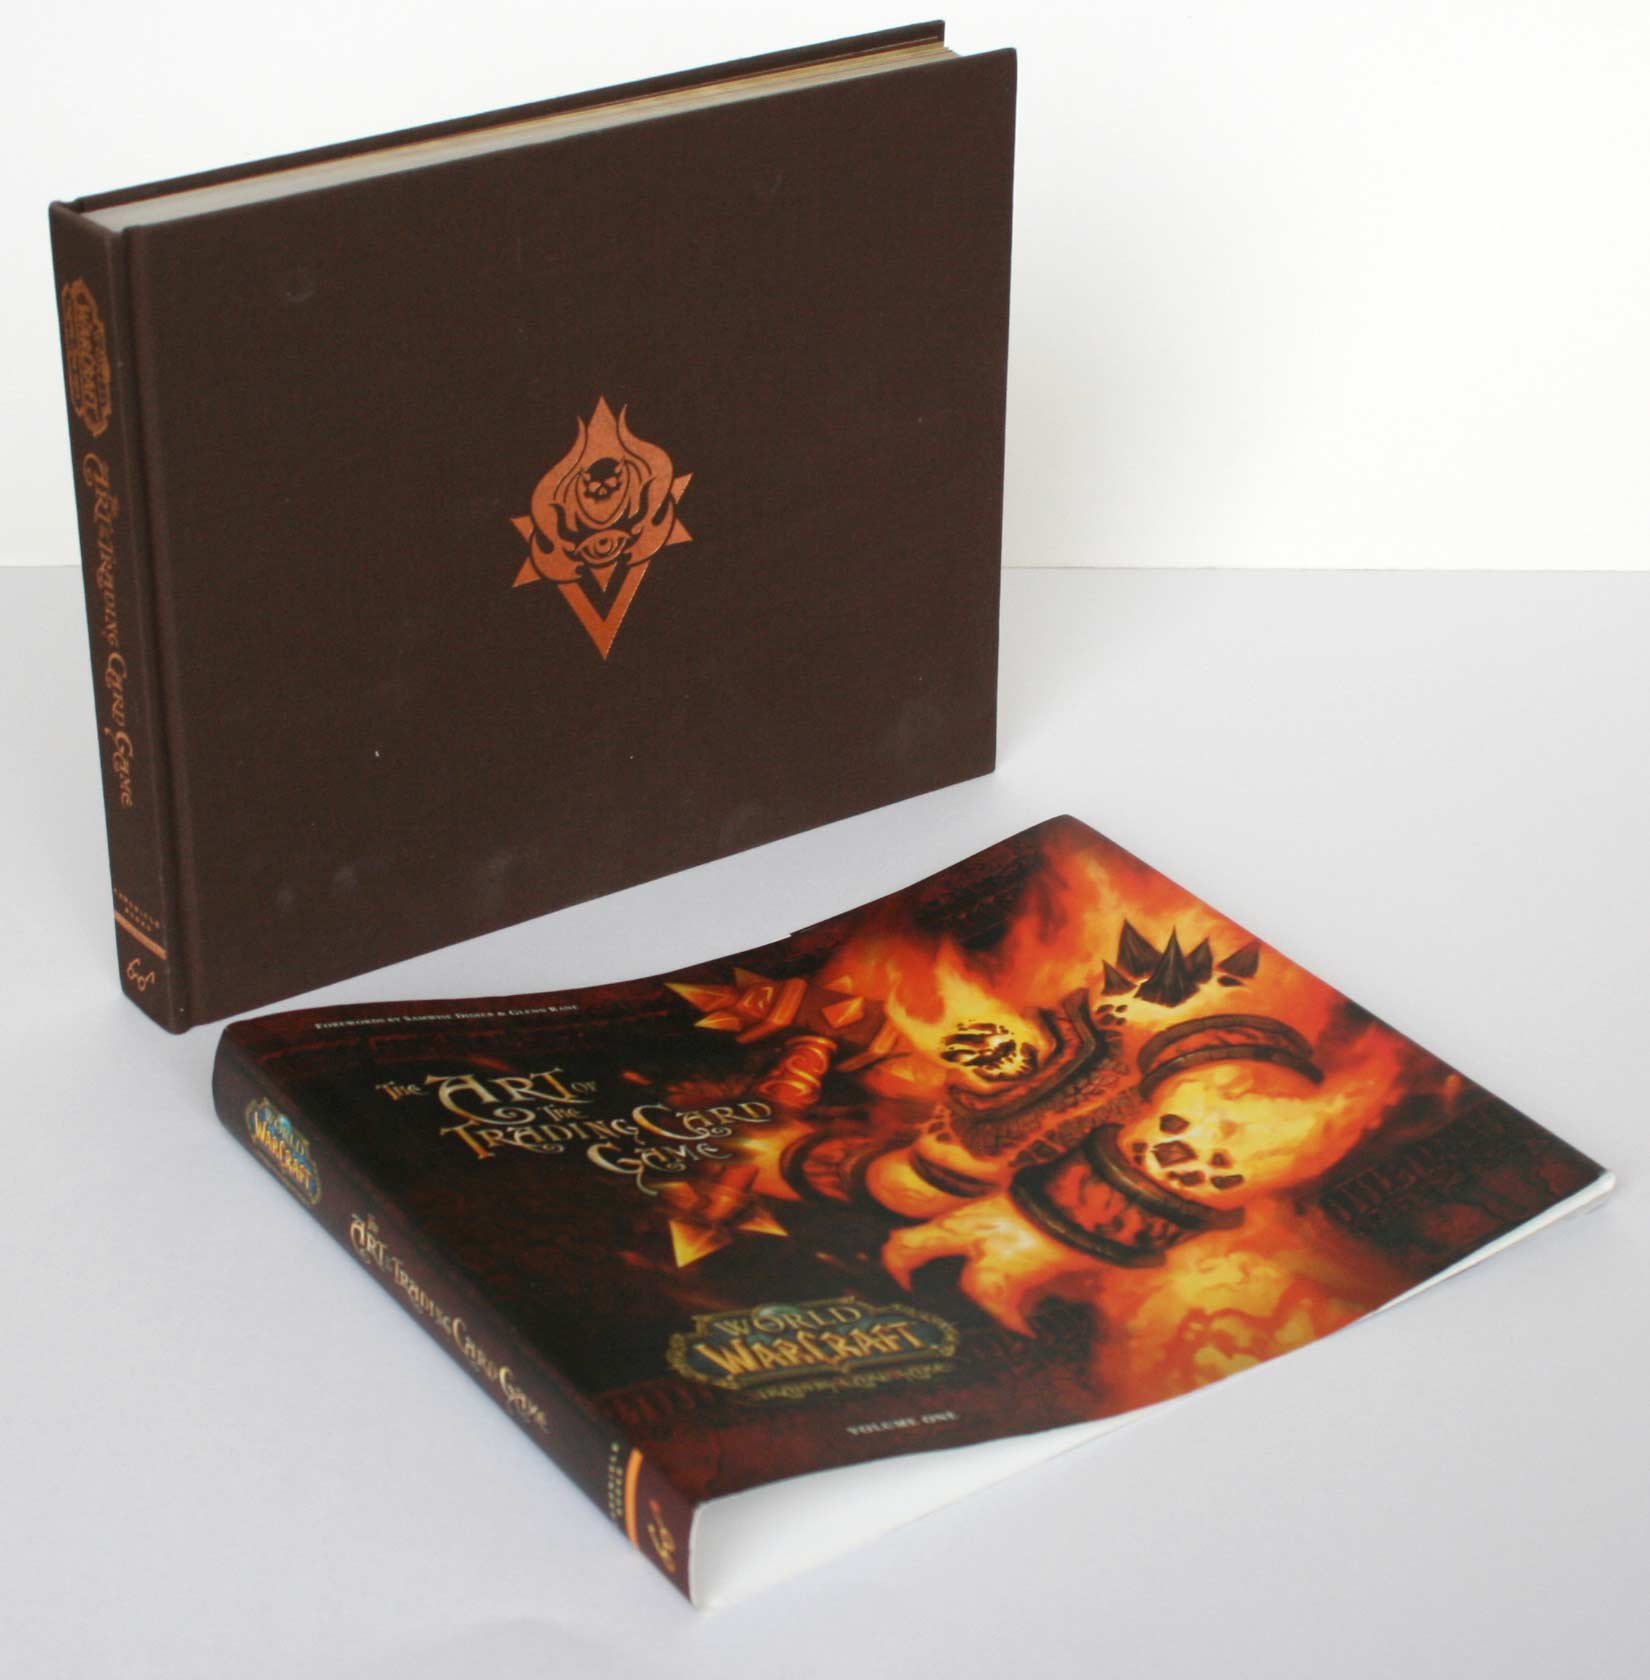 World of Warcraft : The Art of the Trading Card Game (Art book) - couverture de protection enlevée